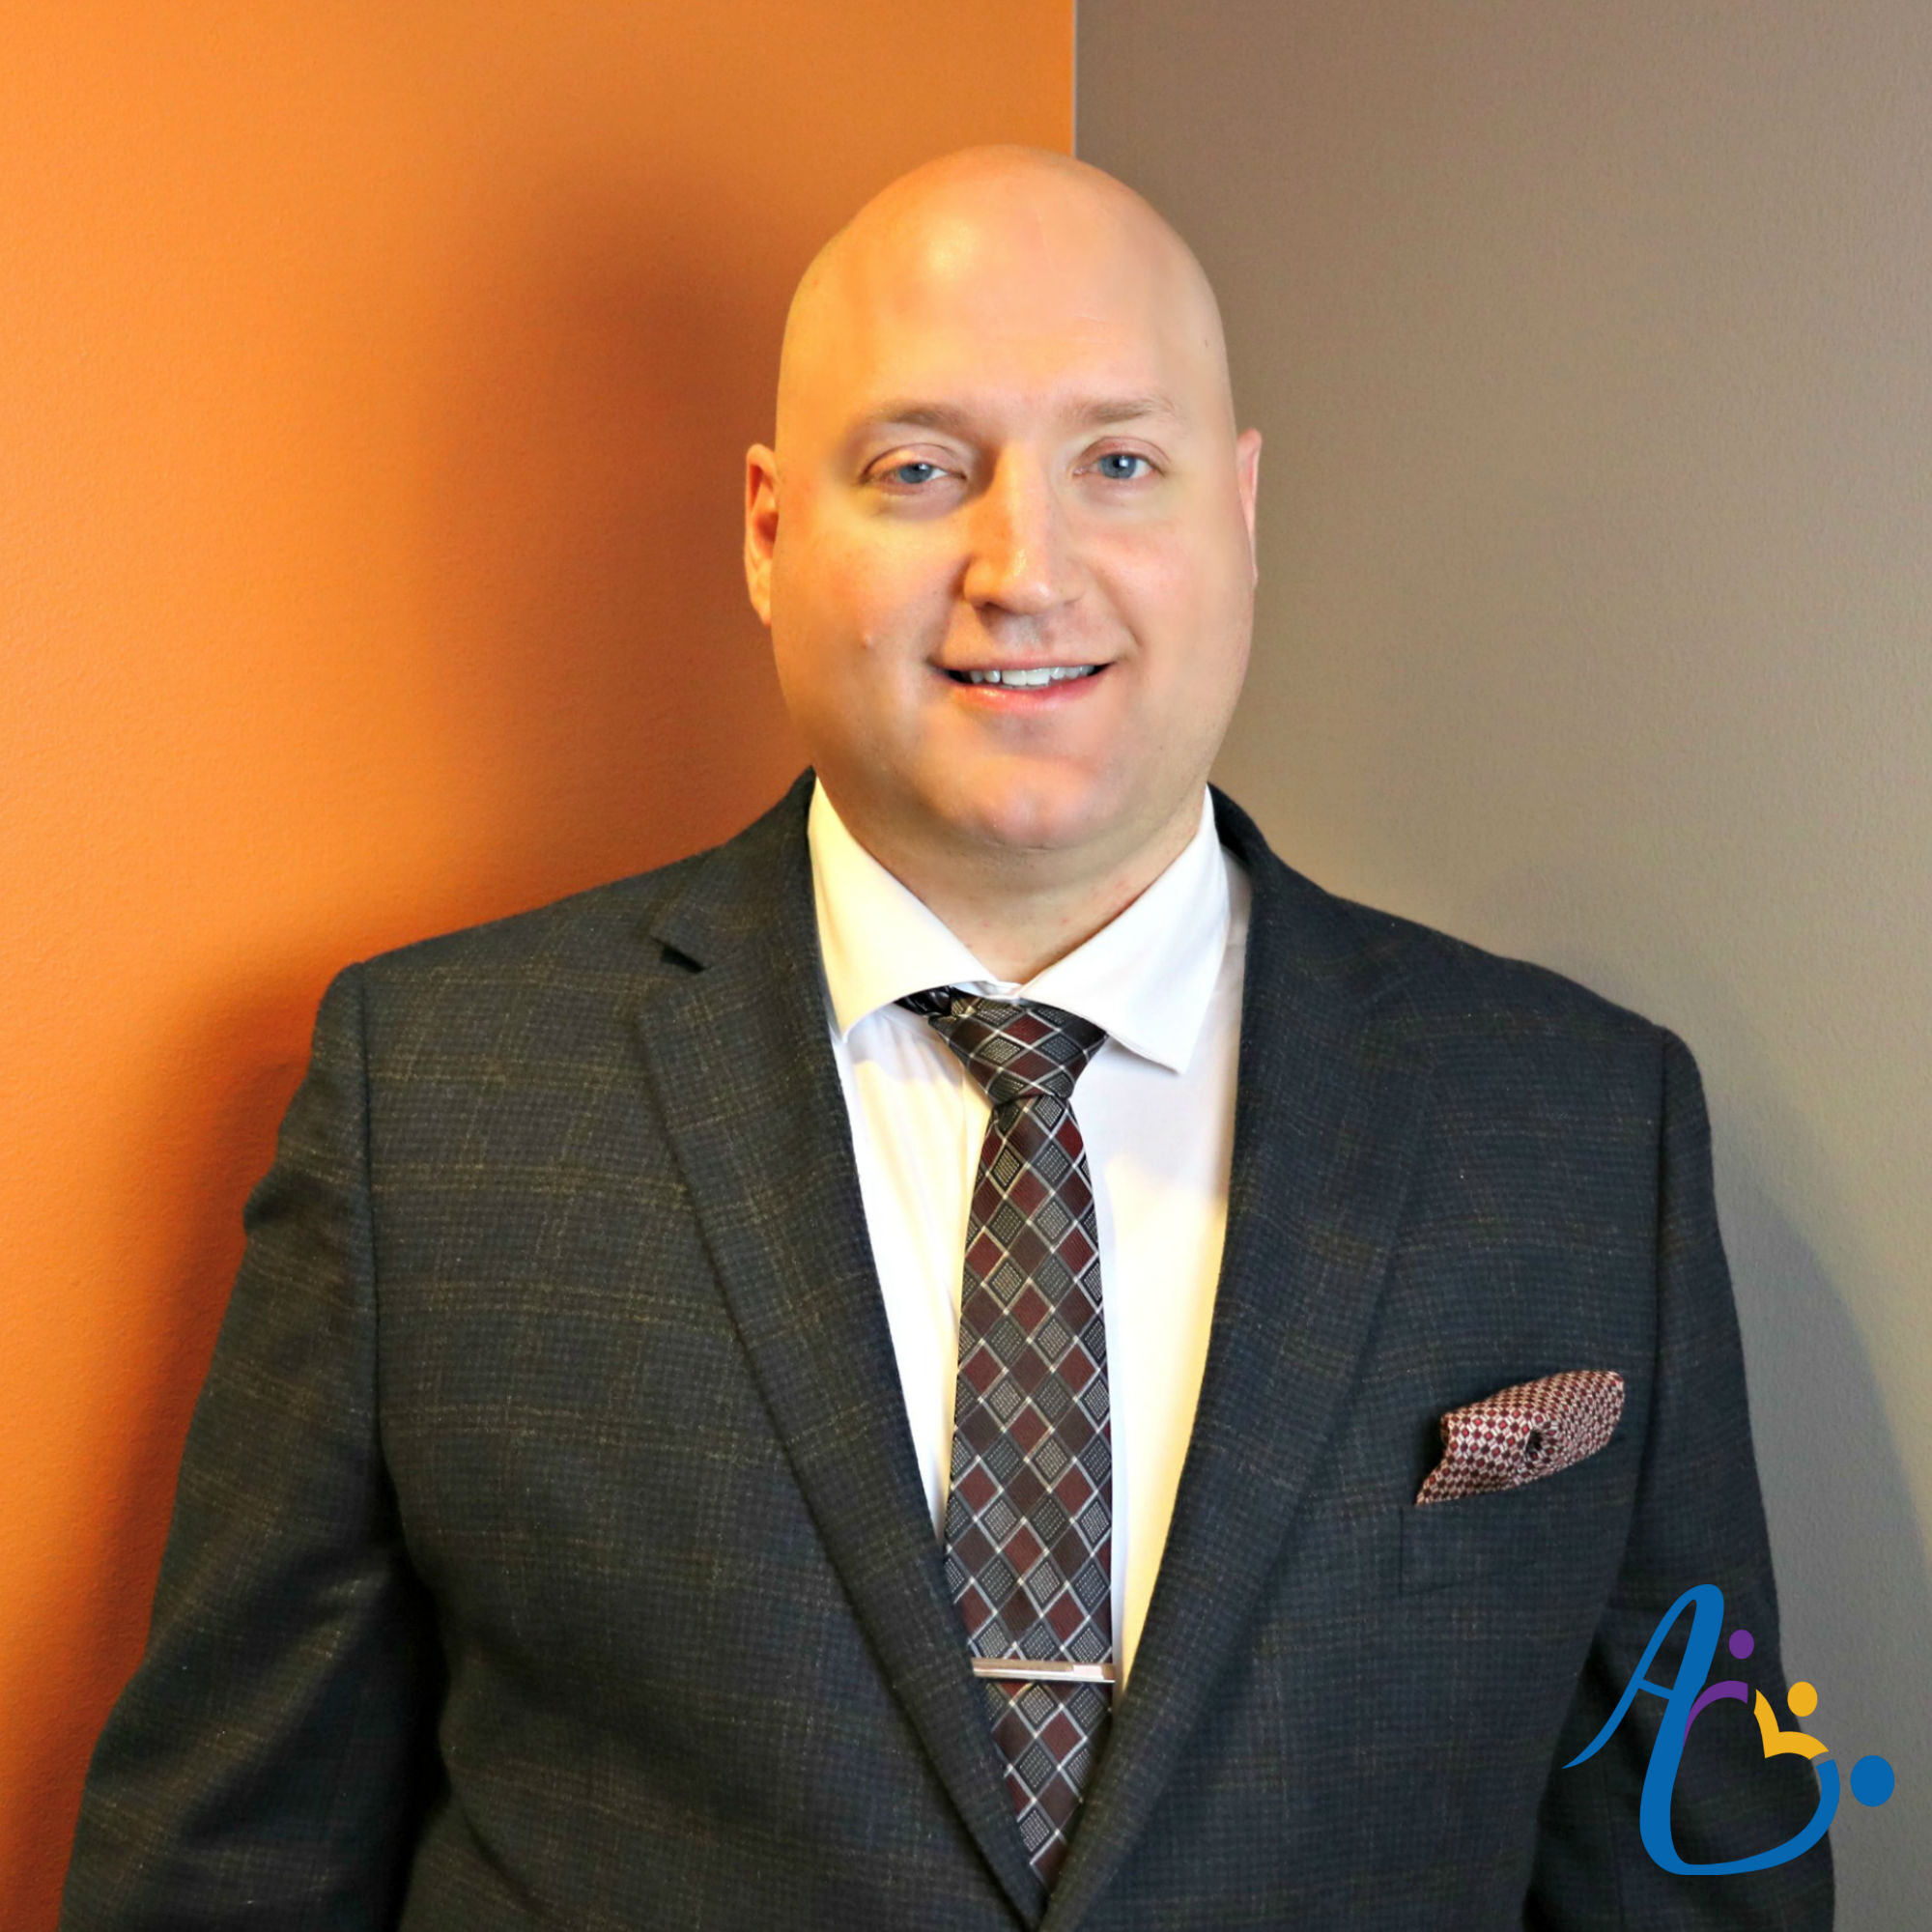 matt-armstrong-lcmft-clinical-director-ceo-armstrong-family-counseling-verum-testing-trauma-expert-neurofeedback-provider